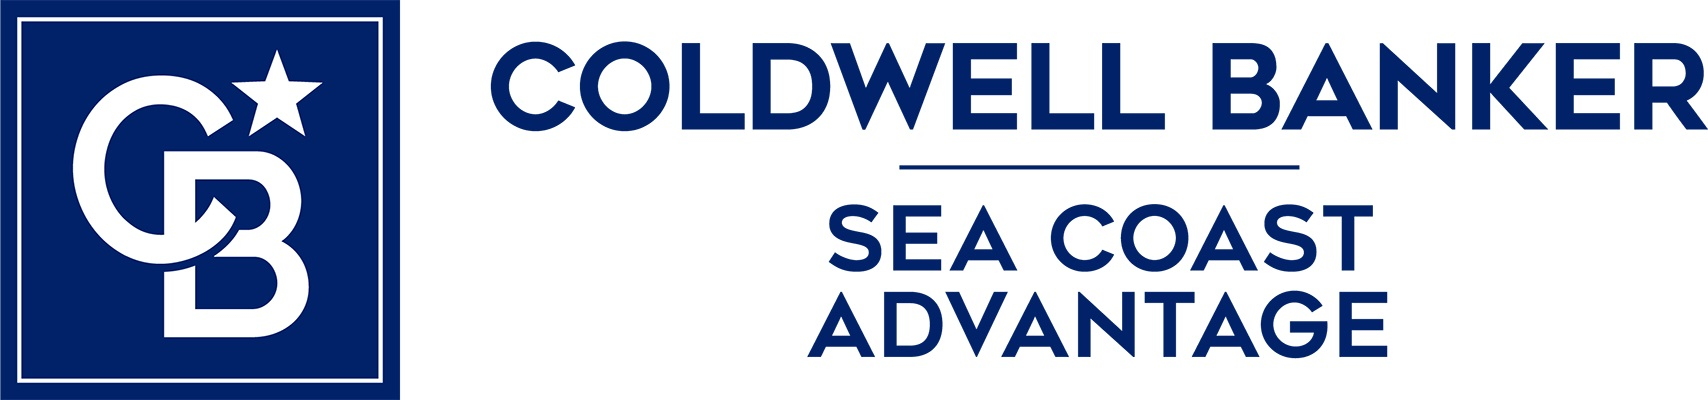 Carolyn Hall - Coldwell Banker Sea Coast Advantage Realty Logo